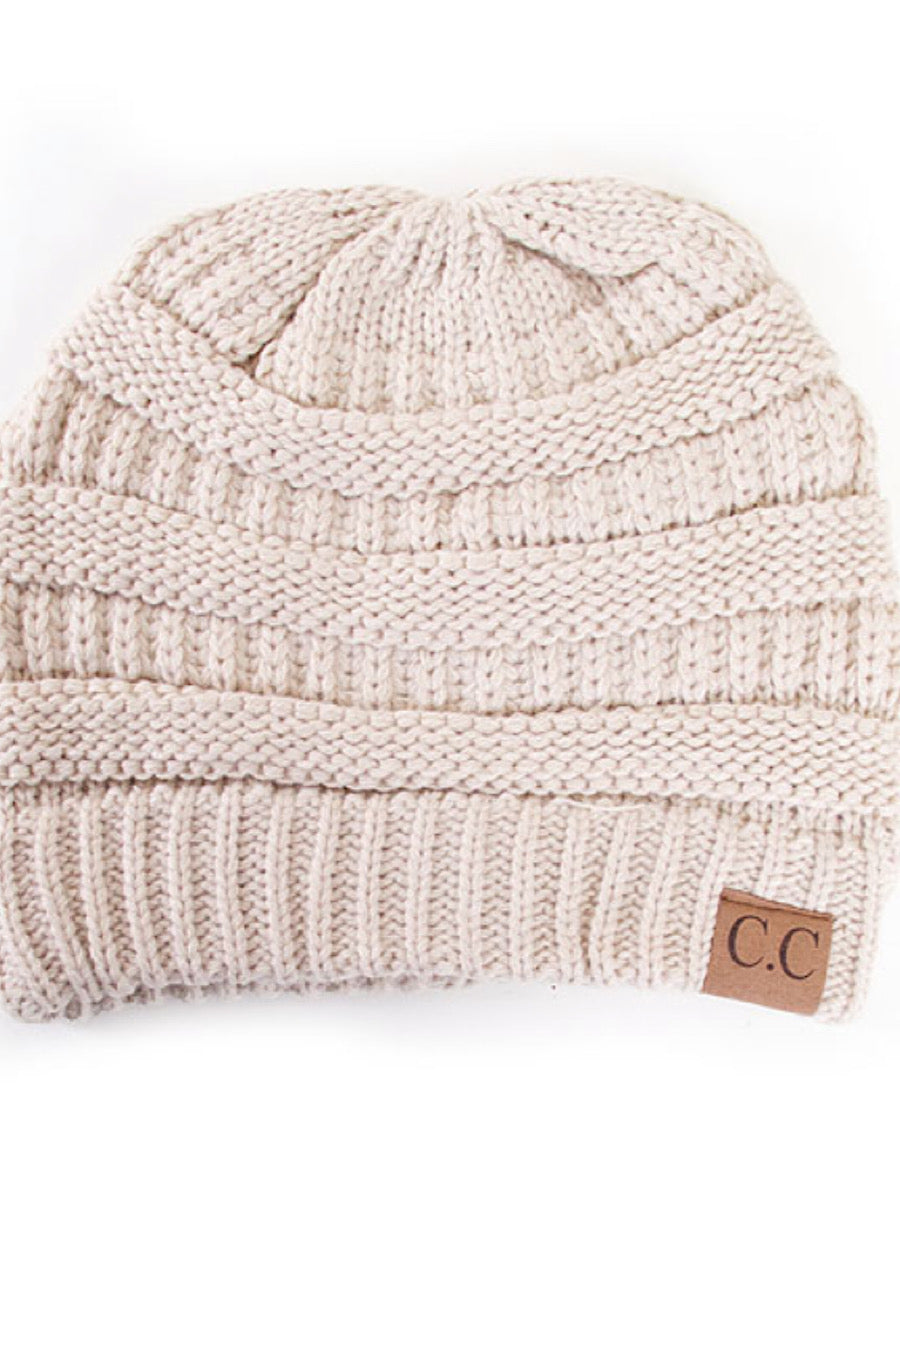 CC Beanie in Various Colors